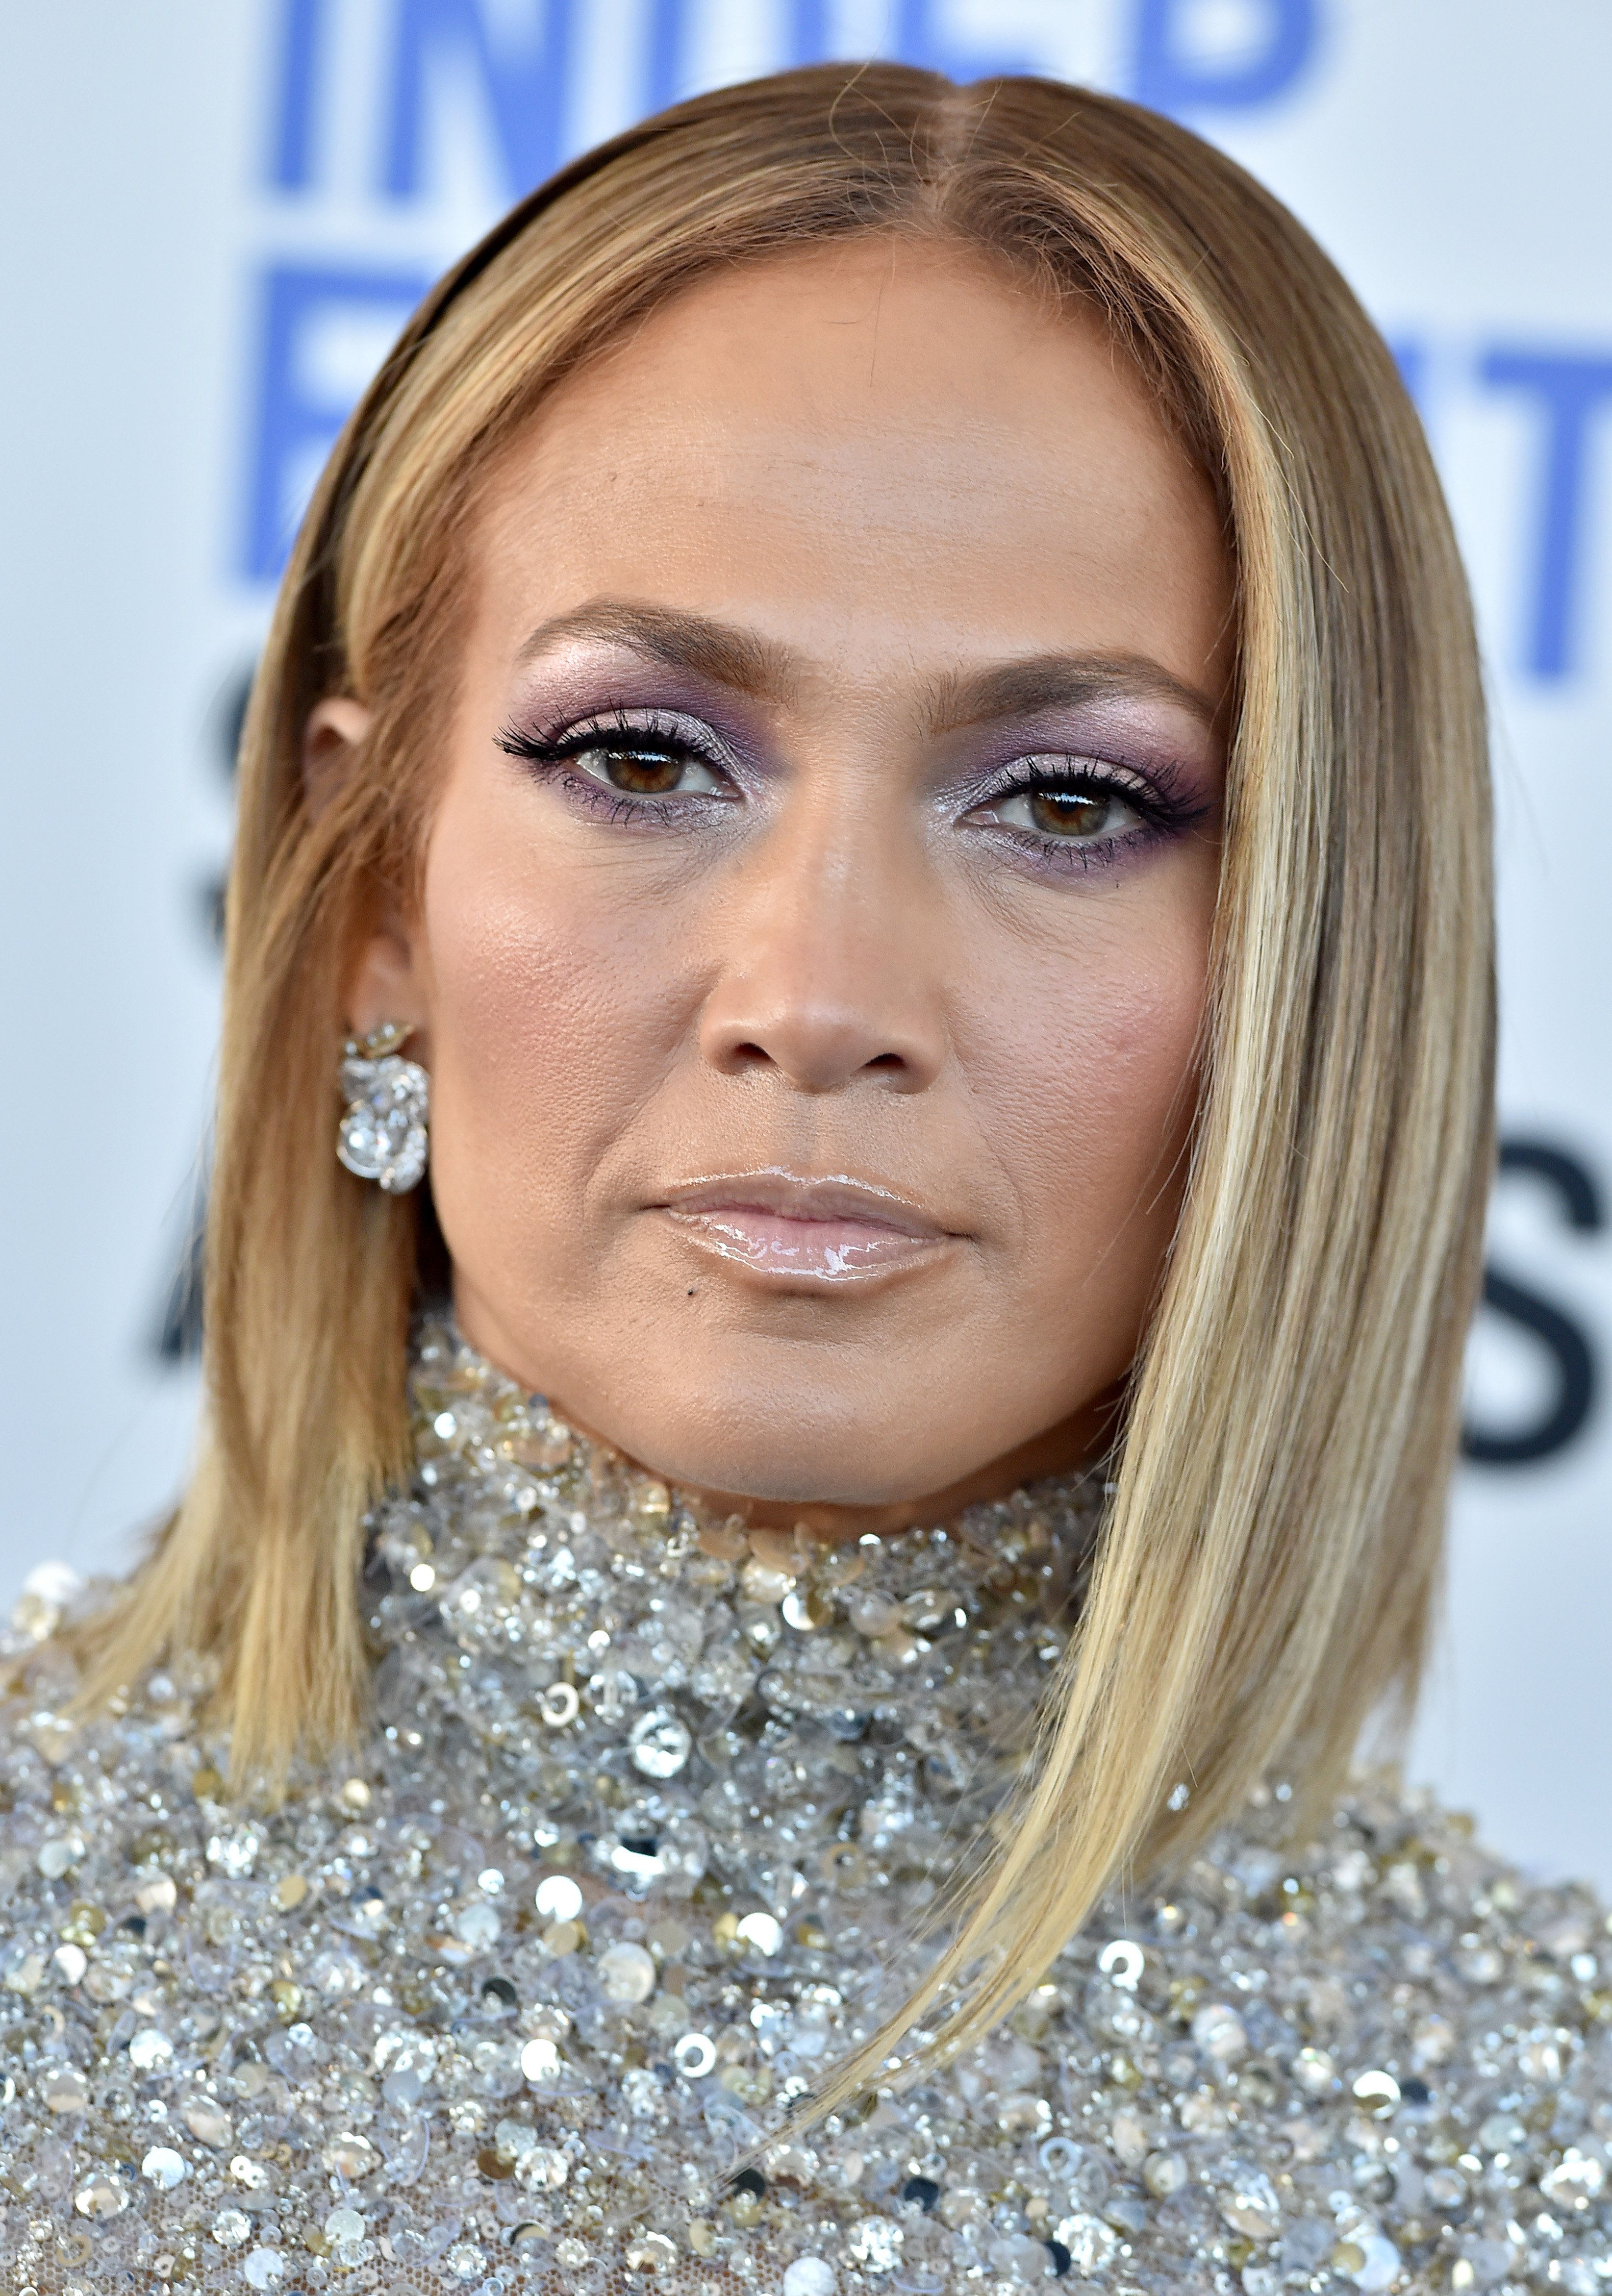 Jennifer Lopez attends the 2020 Film Independent Spirit Awards on February 08, 2020, in Santa Monica, California. | Source: Getty Images.